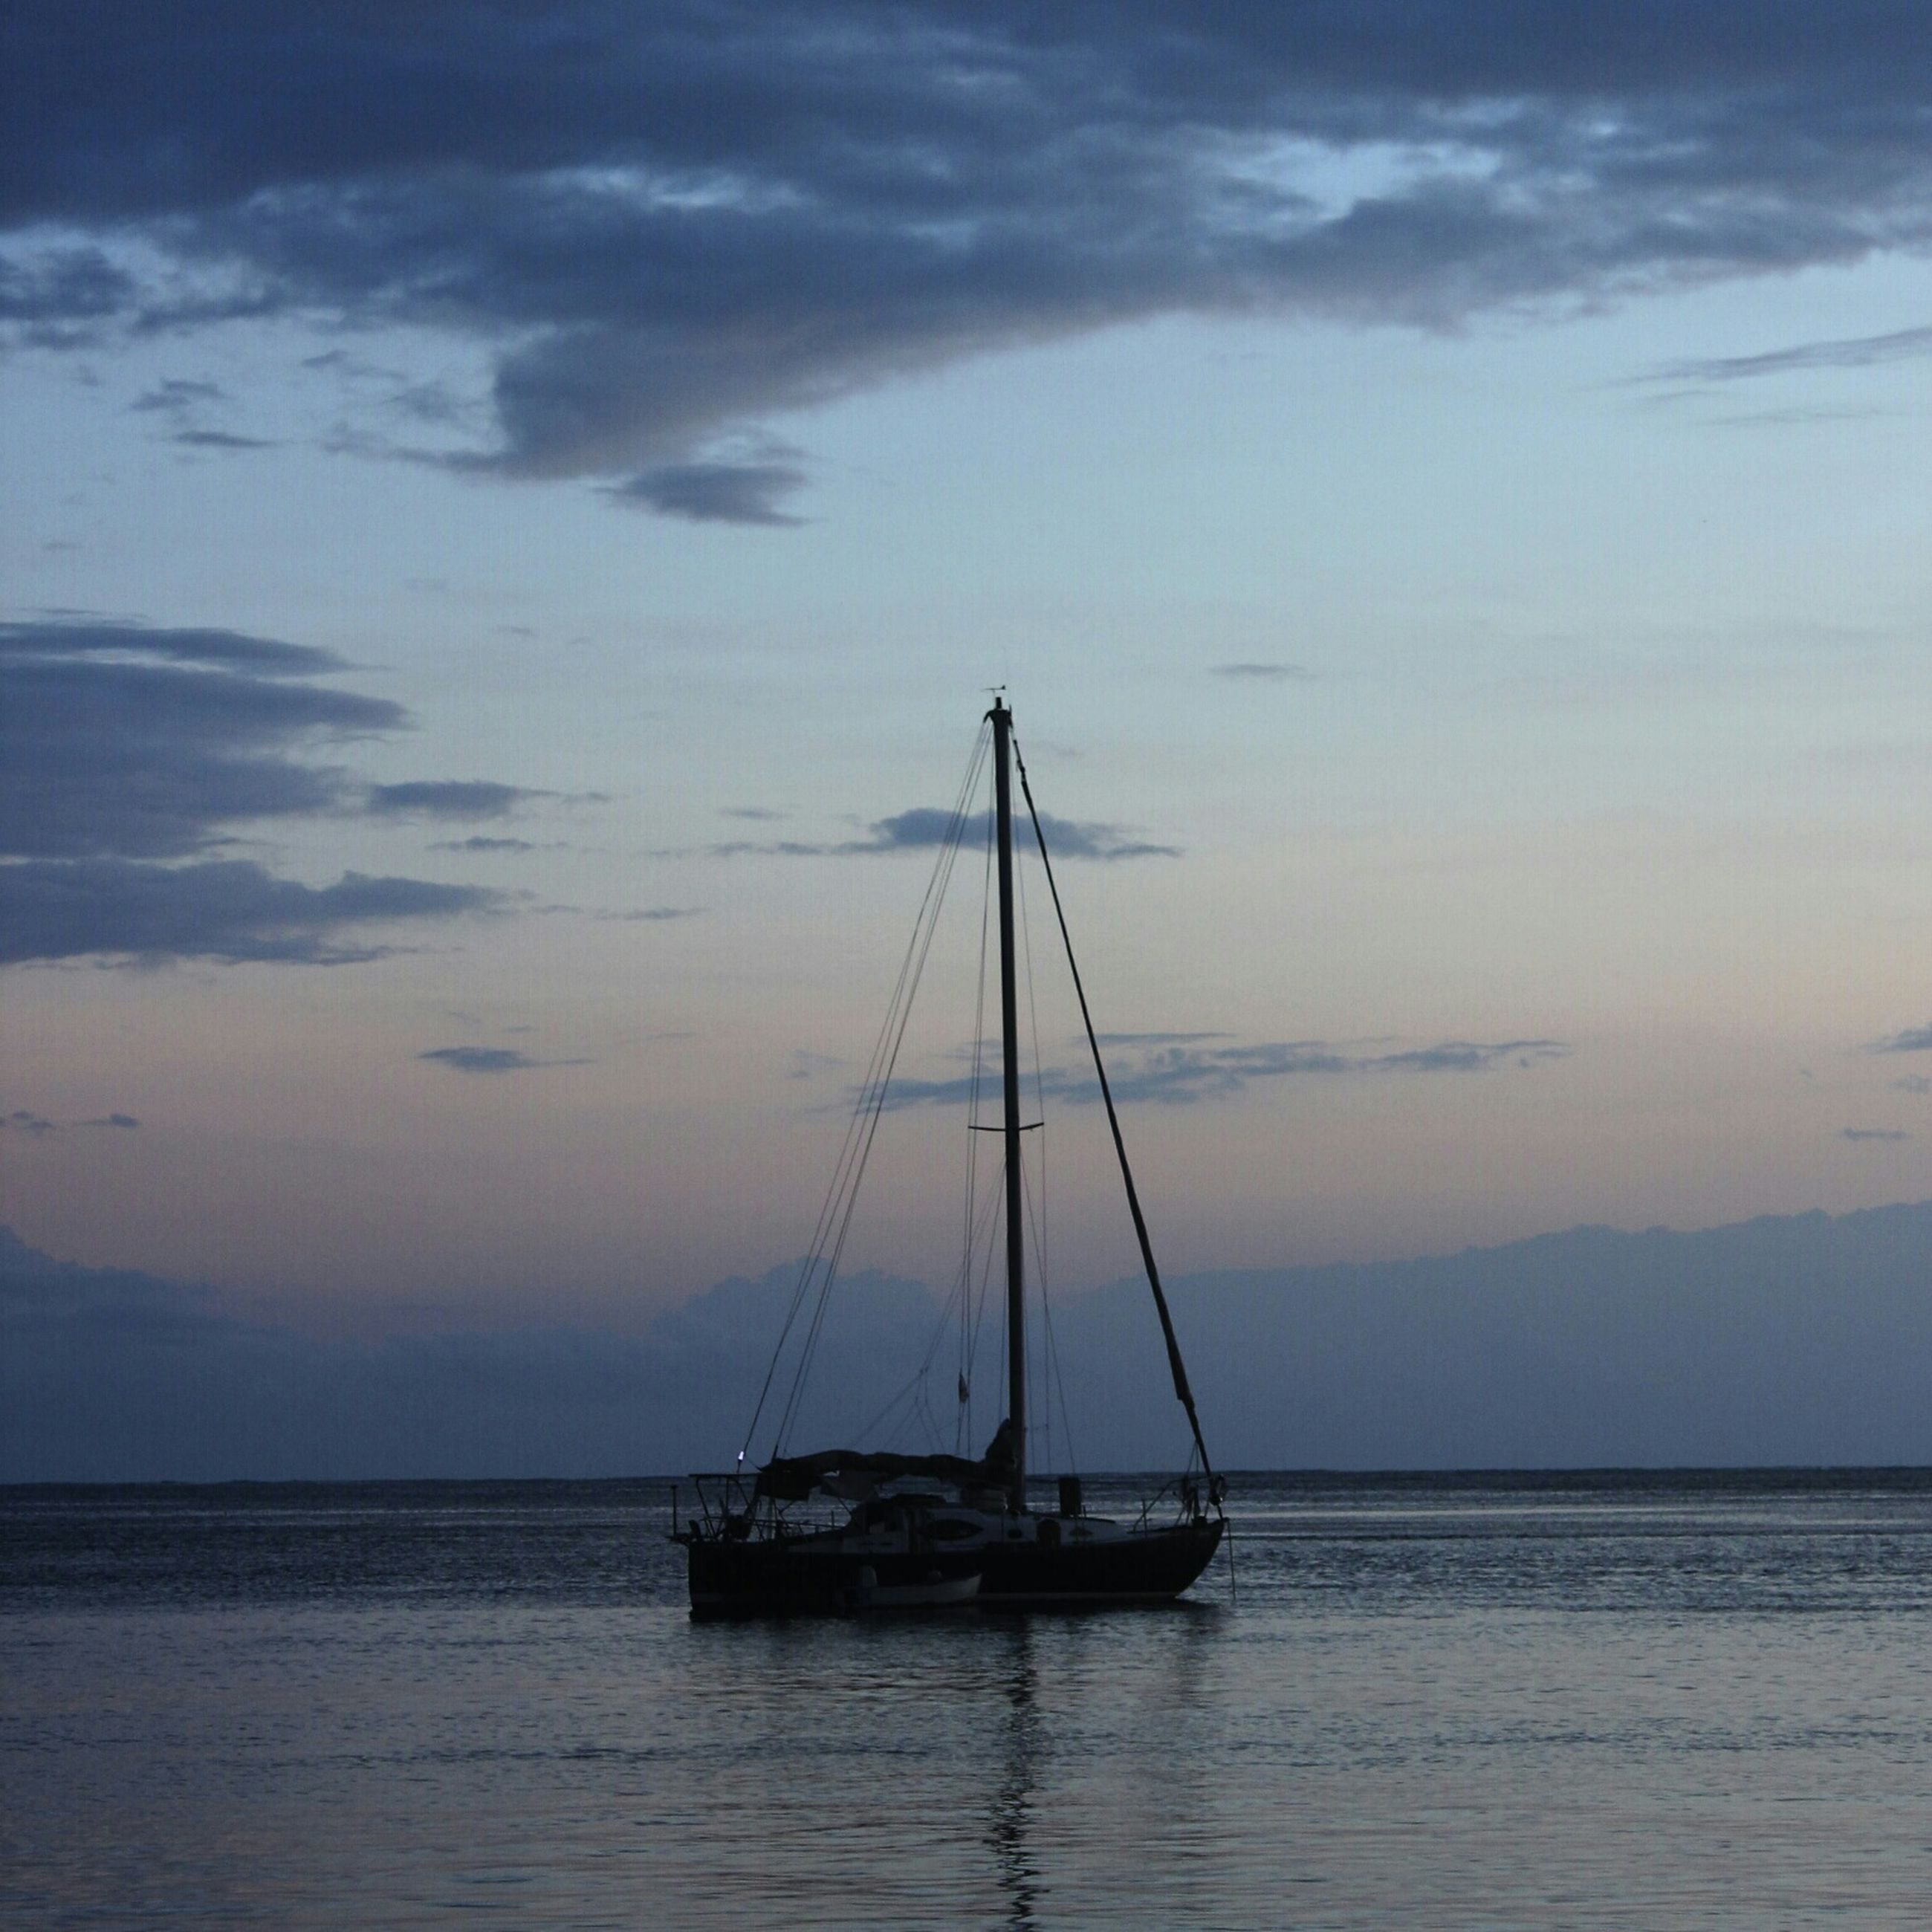 sea, nautical vessel, water, transportation, boat, mode of transport, sky, horizon over water, tranquility, tranquil scene, scenics, sunset, sailboat, beauty in nature, waterfront, mast, nature, sailing, silhouette, cloud - sky